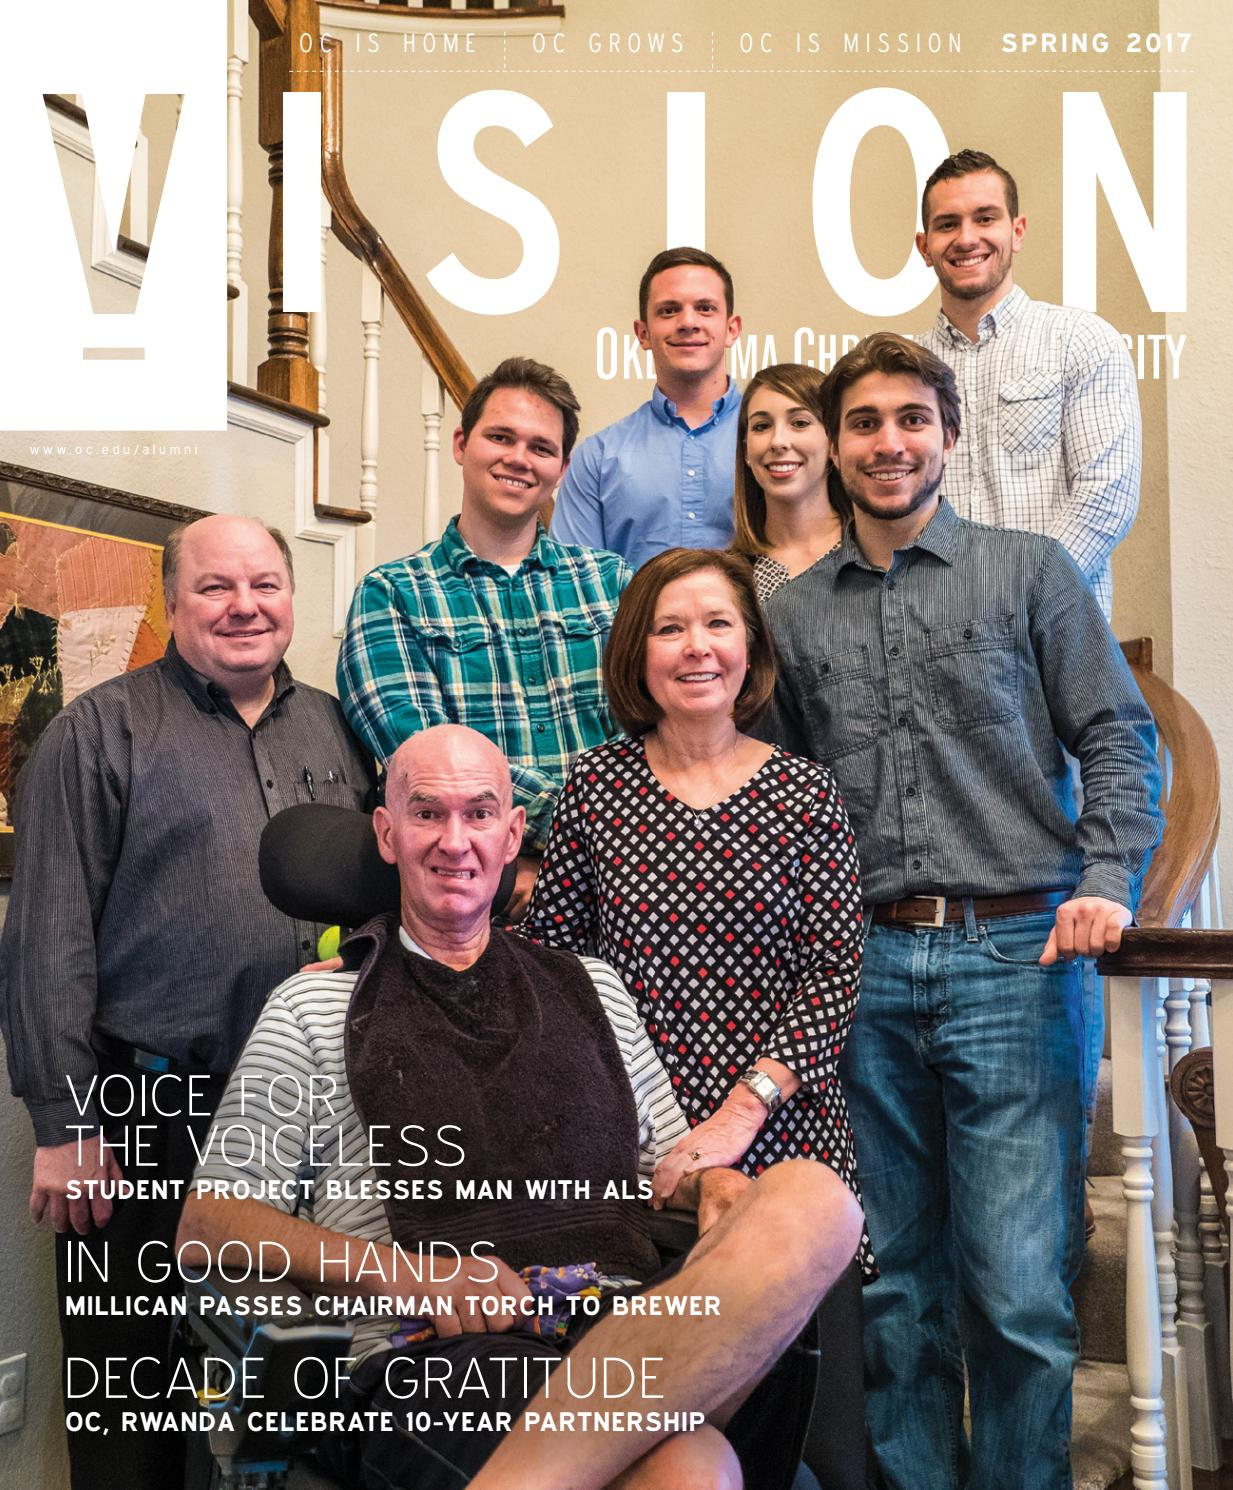 c4ed5cded8f9 Vision - Spring 2017 by Oklahoma Christian University - issuu